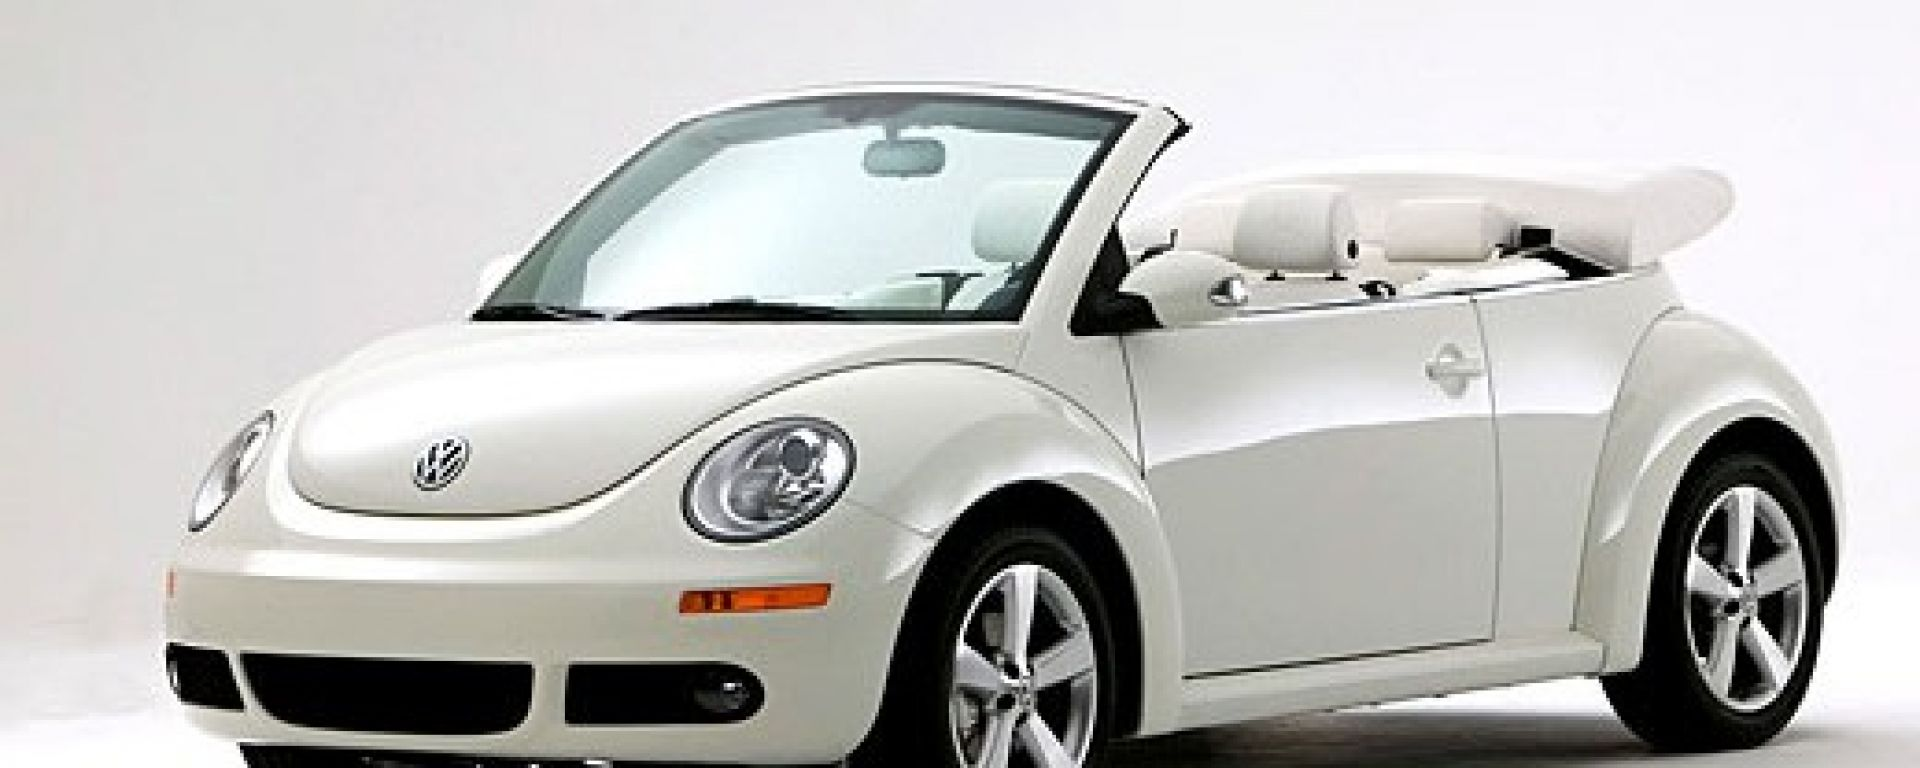 Vw New Beetle Triple White